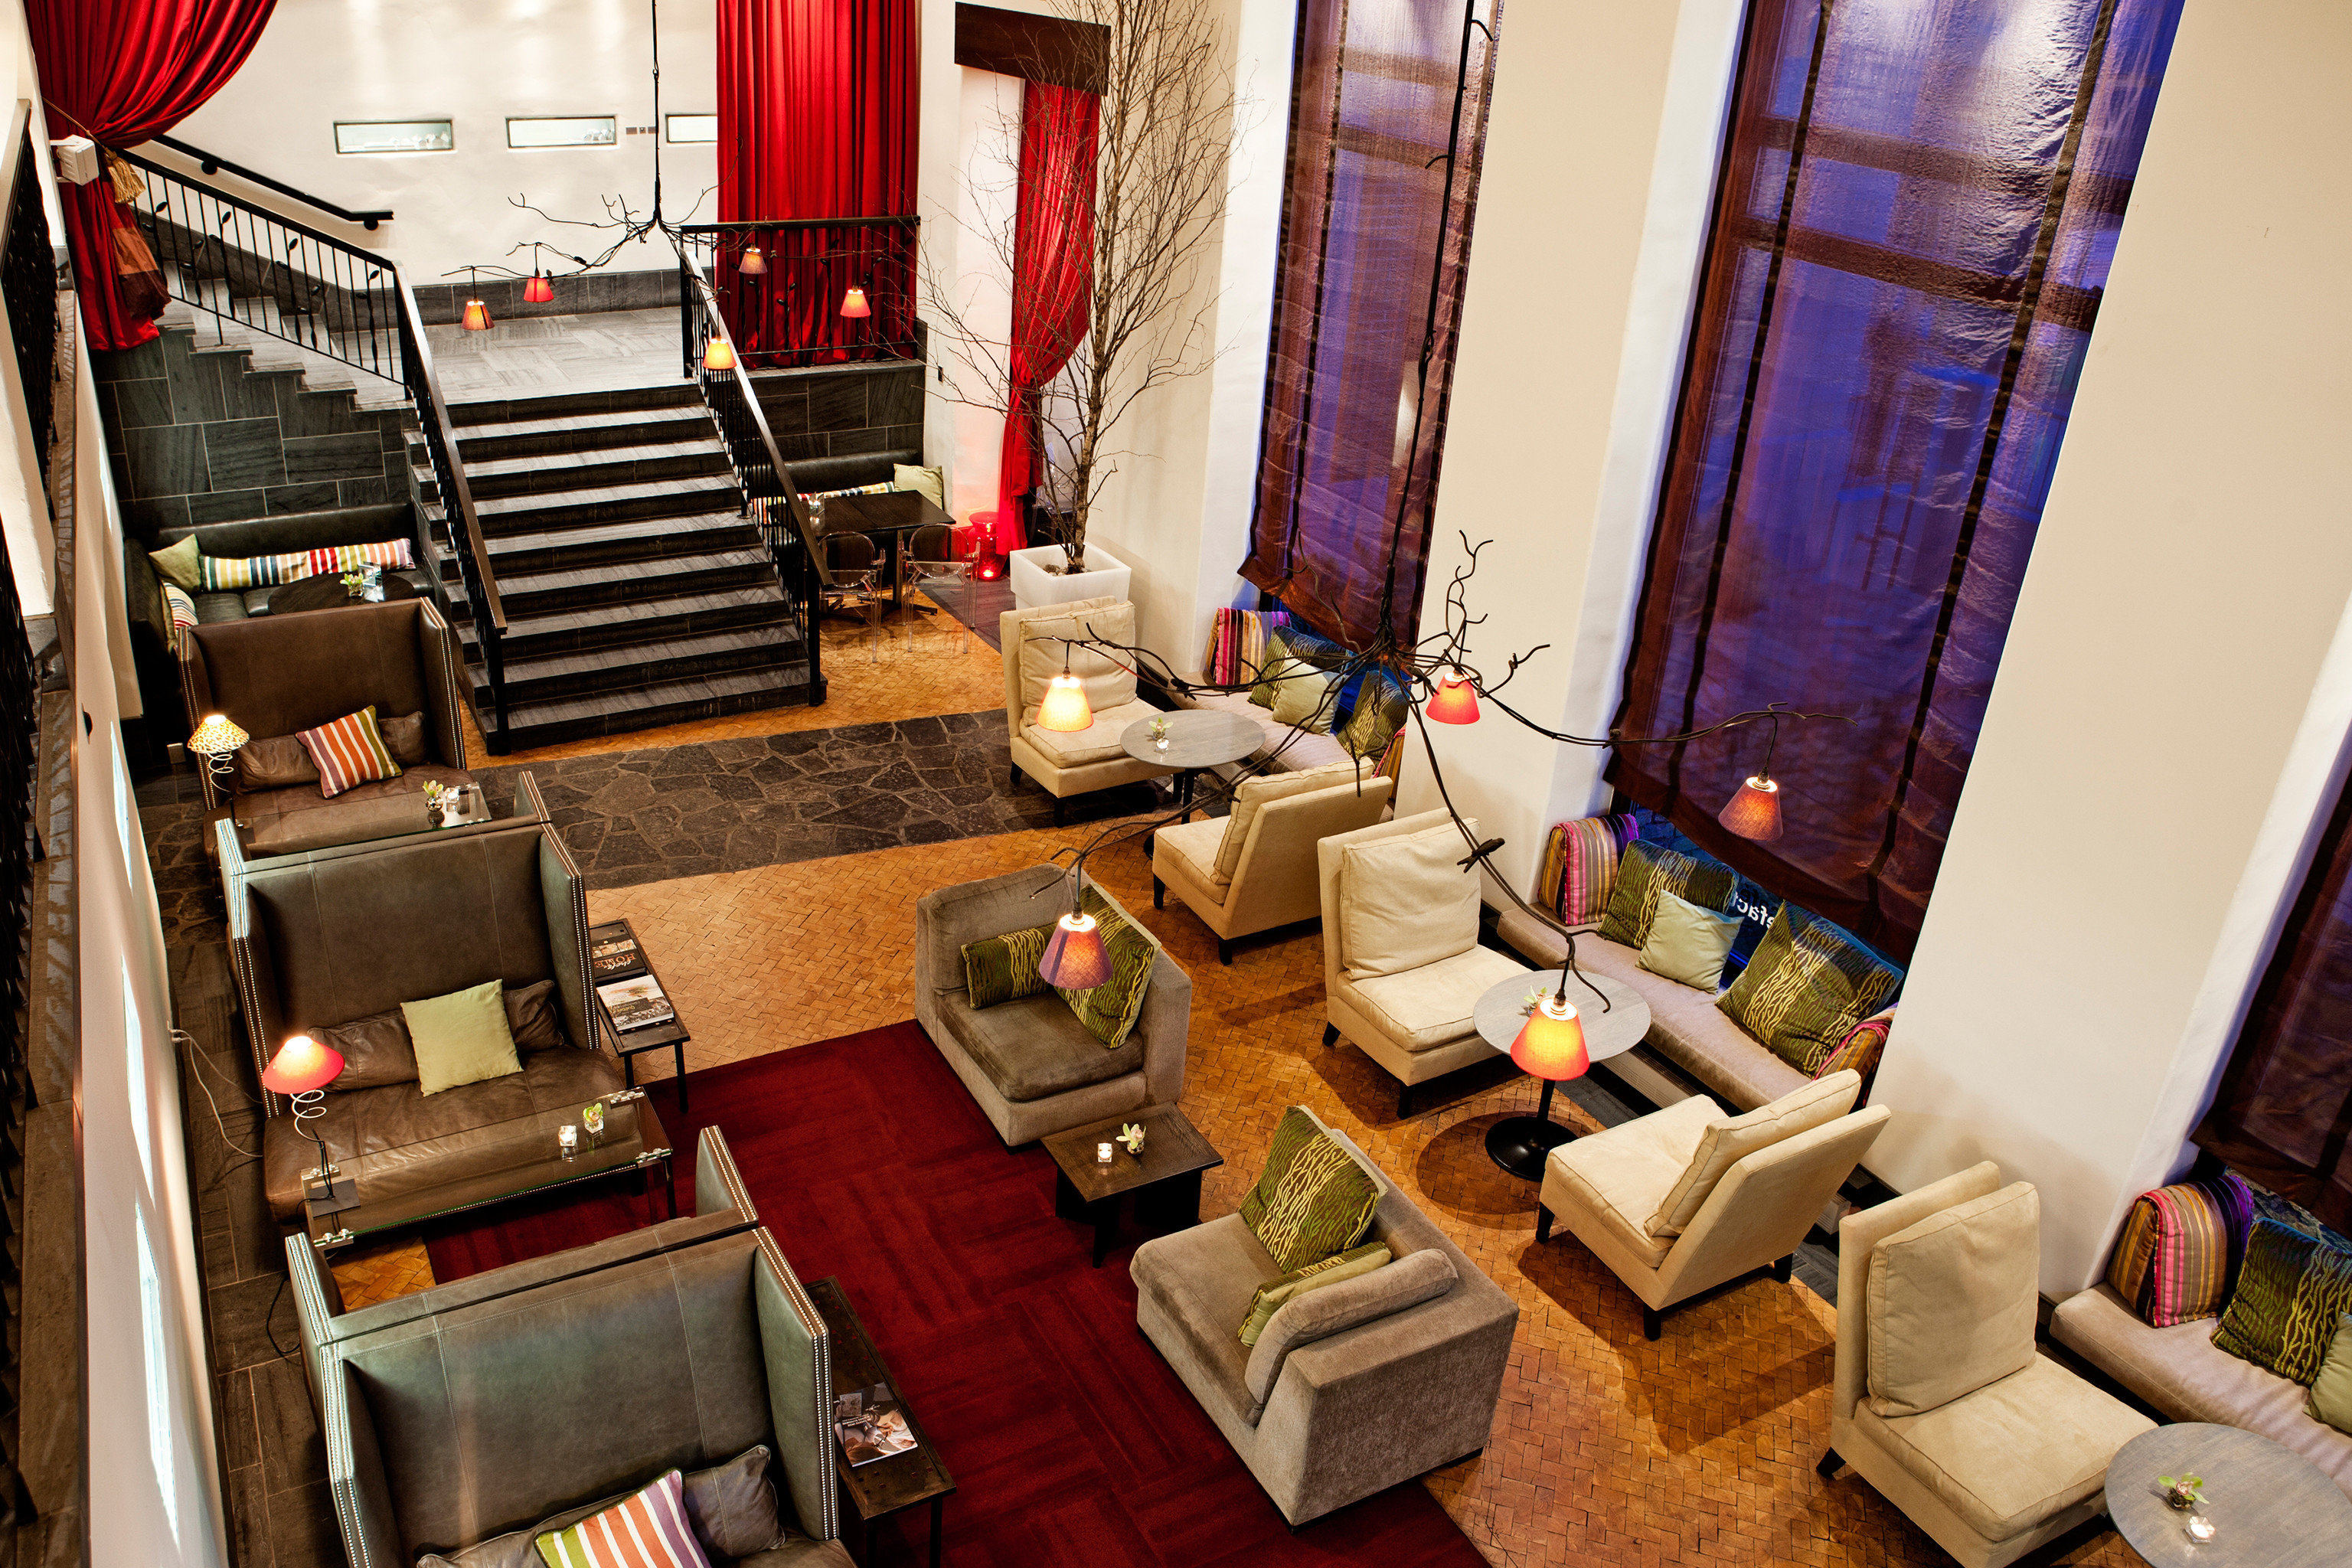 Boutique City Hip Lobby Lounge home living room restaurant Suite